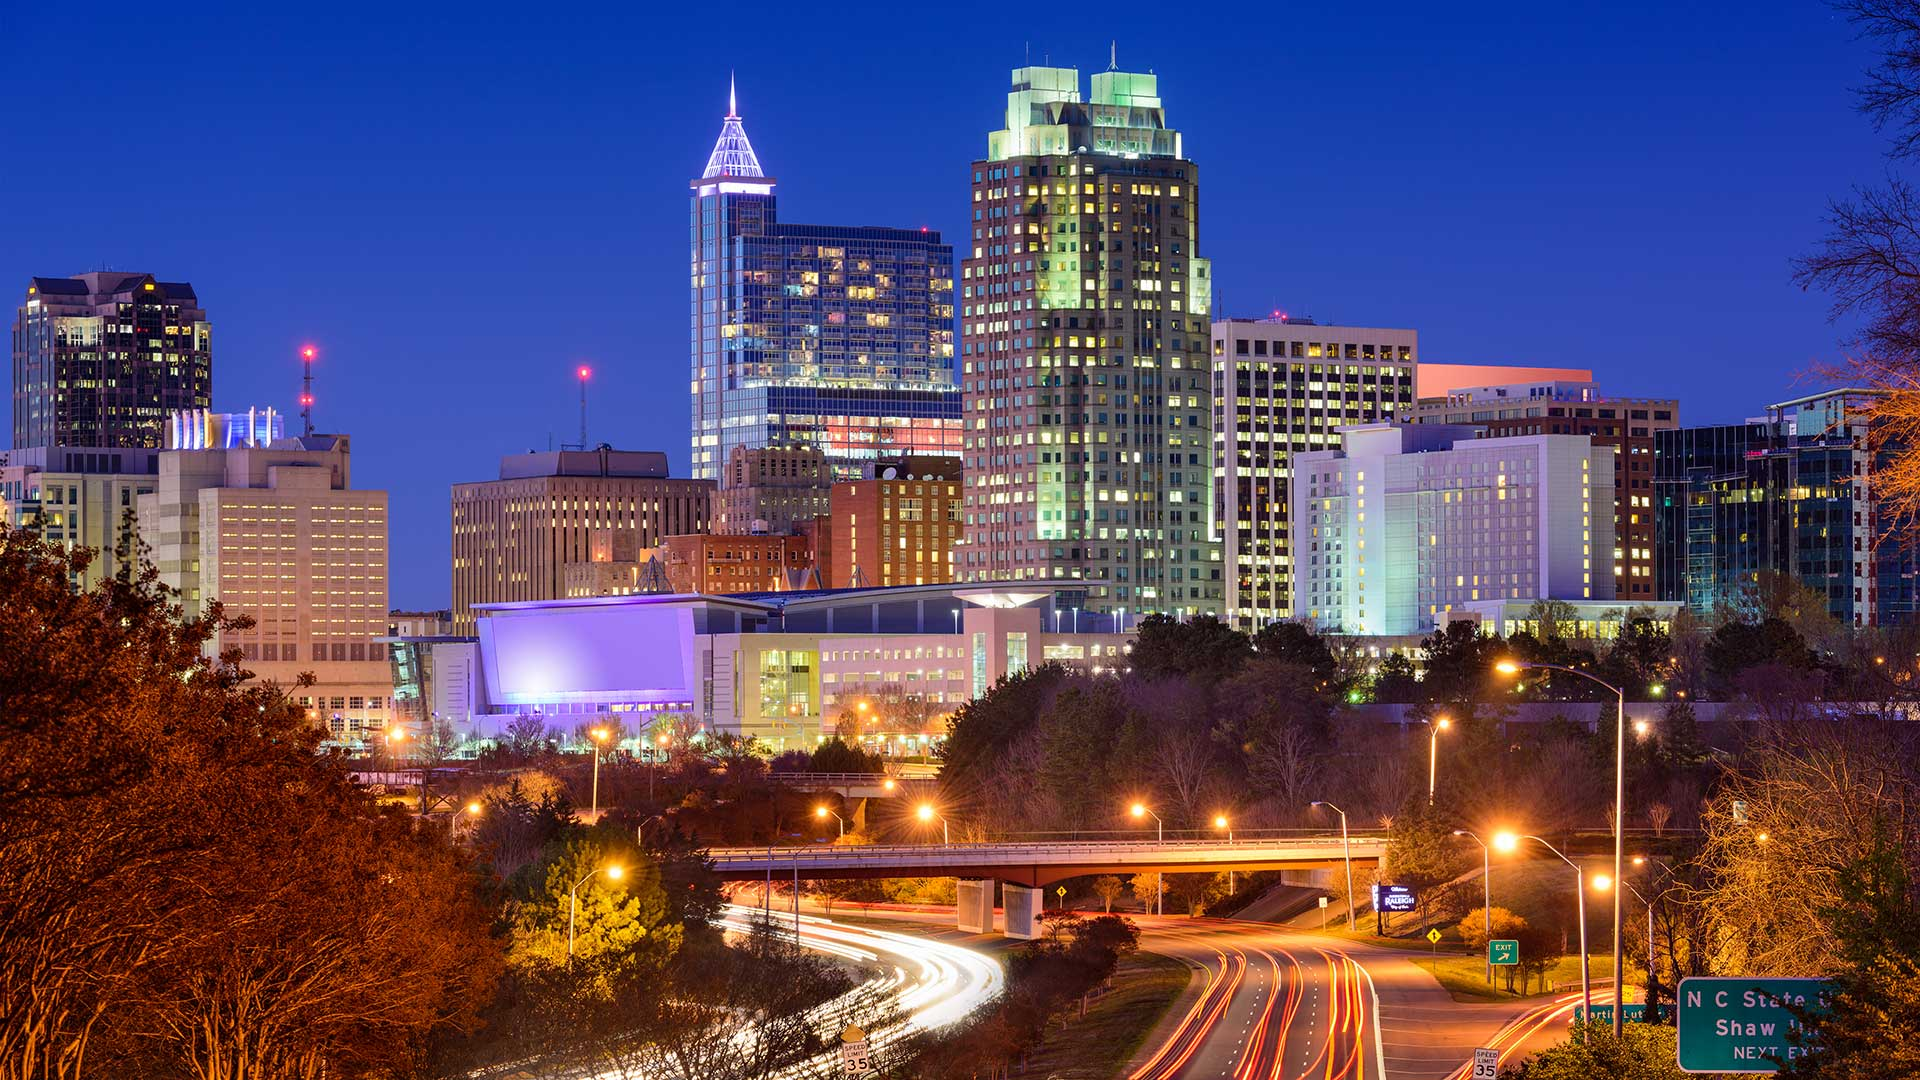 Panorama to illustrate dating in raleigh